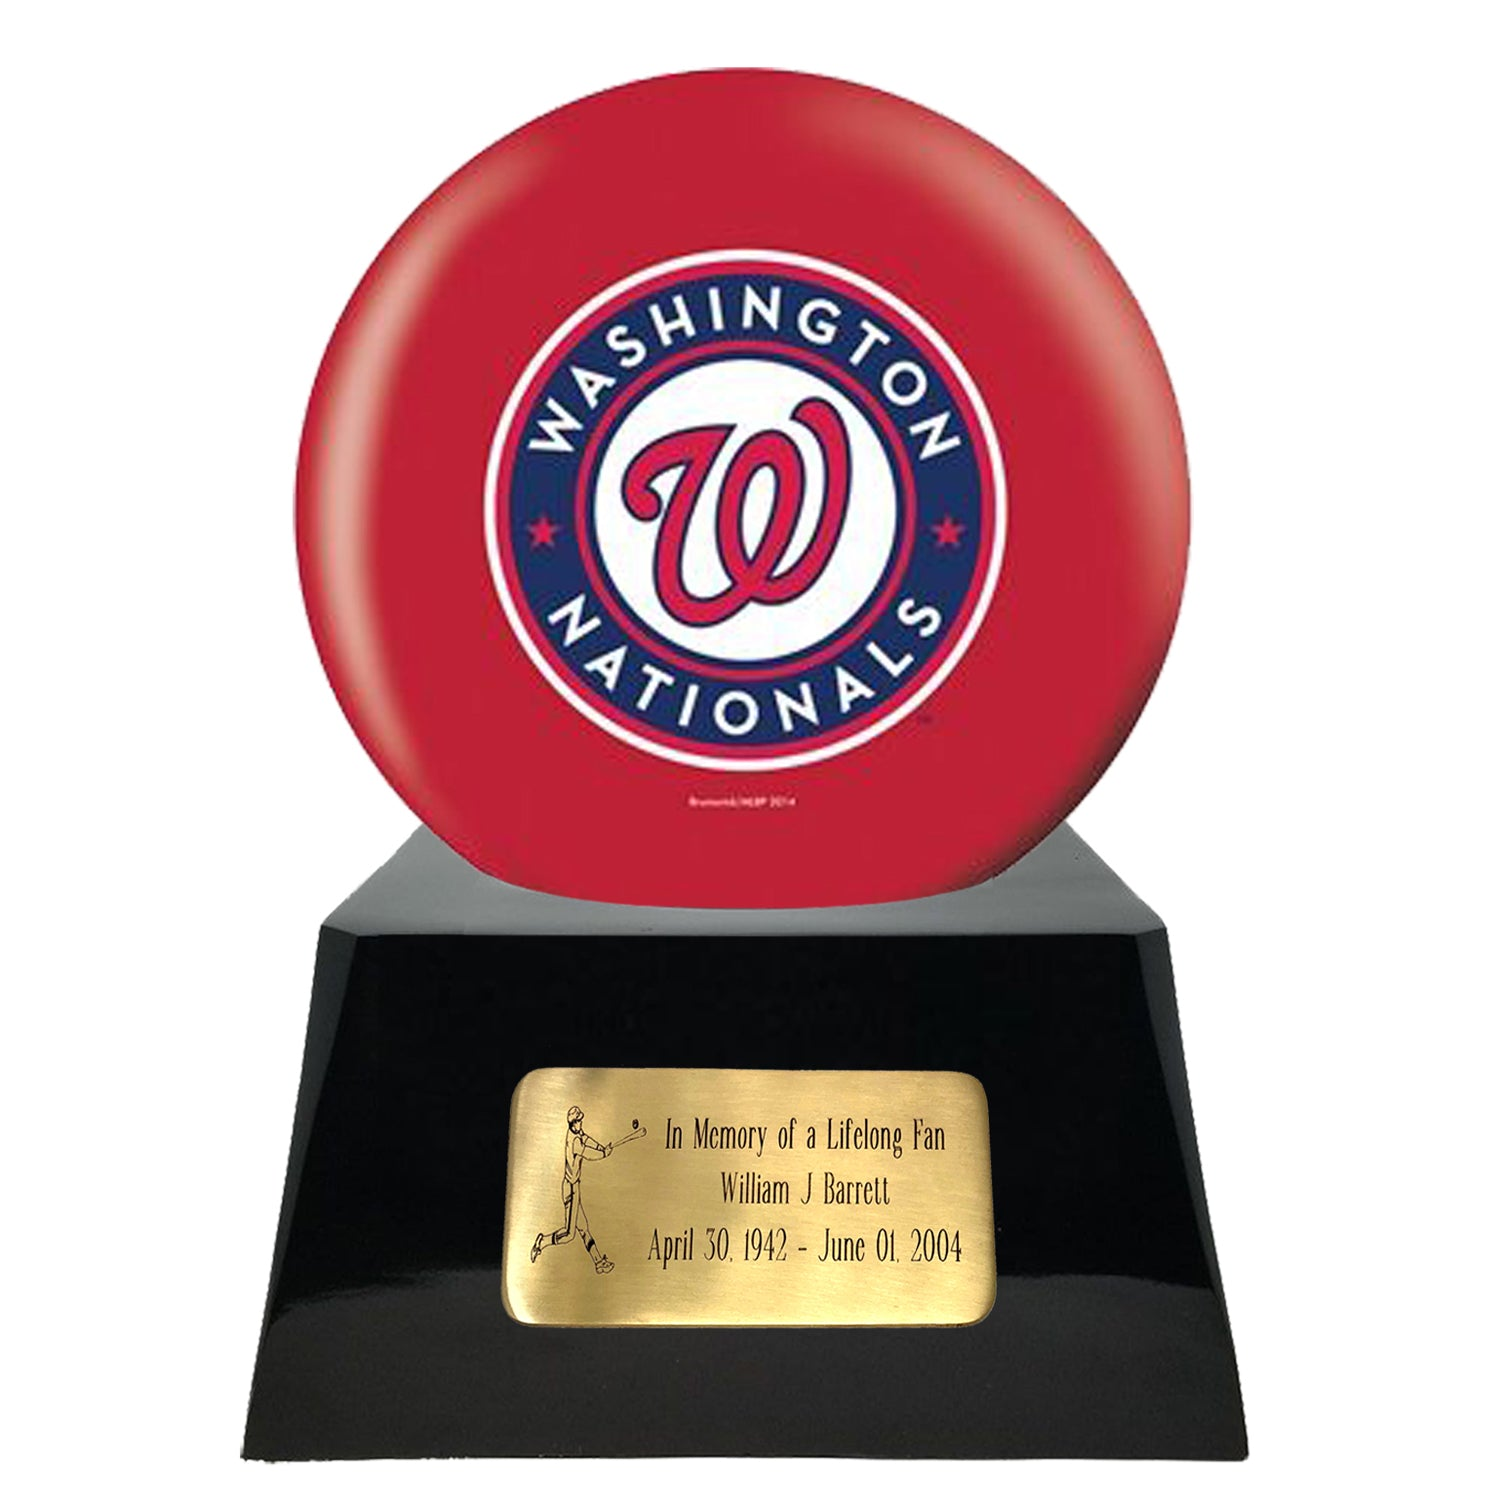 Baseball Cremation Urns For Human Ashes - Baseball Team Cremation Urn and Washington Nationals Ball Decor with custom metal plaque - Memorials4u